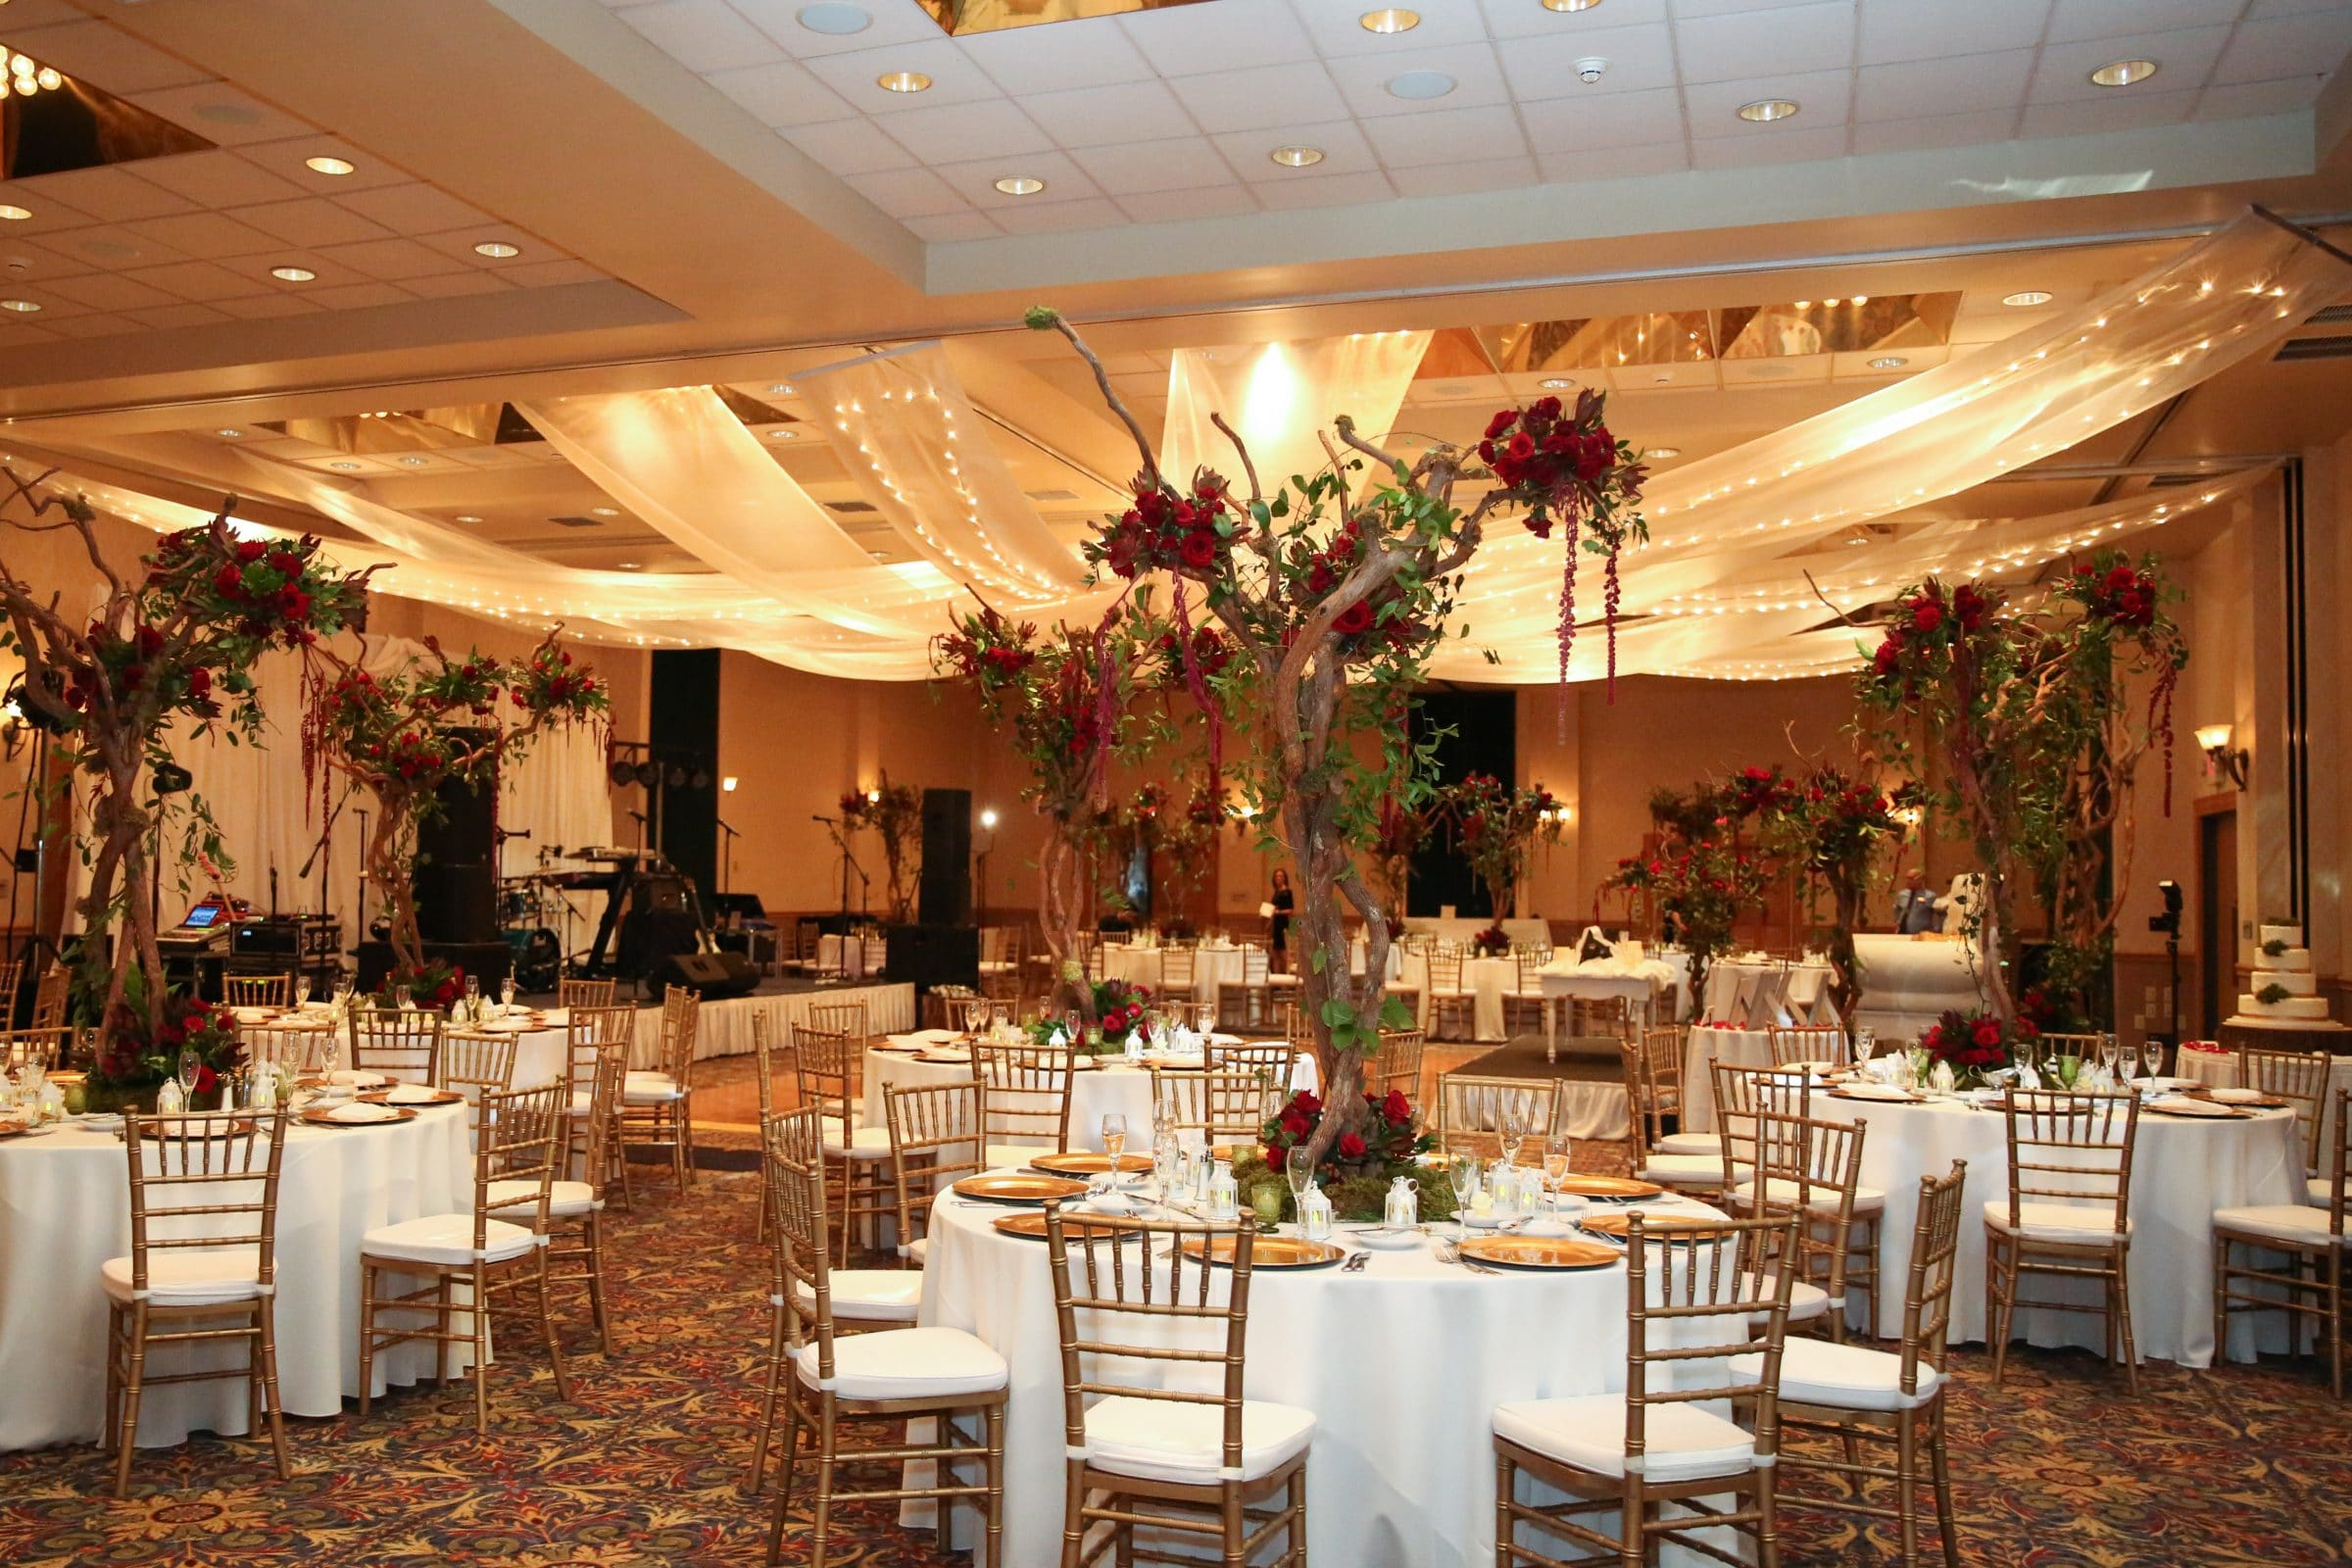 Wedding reception with tall, rustic, floral centerpieces an example of choosing your venue based on style